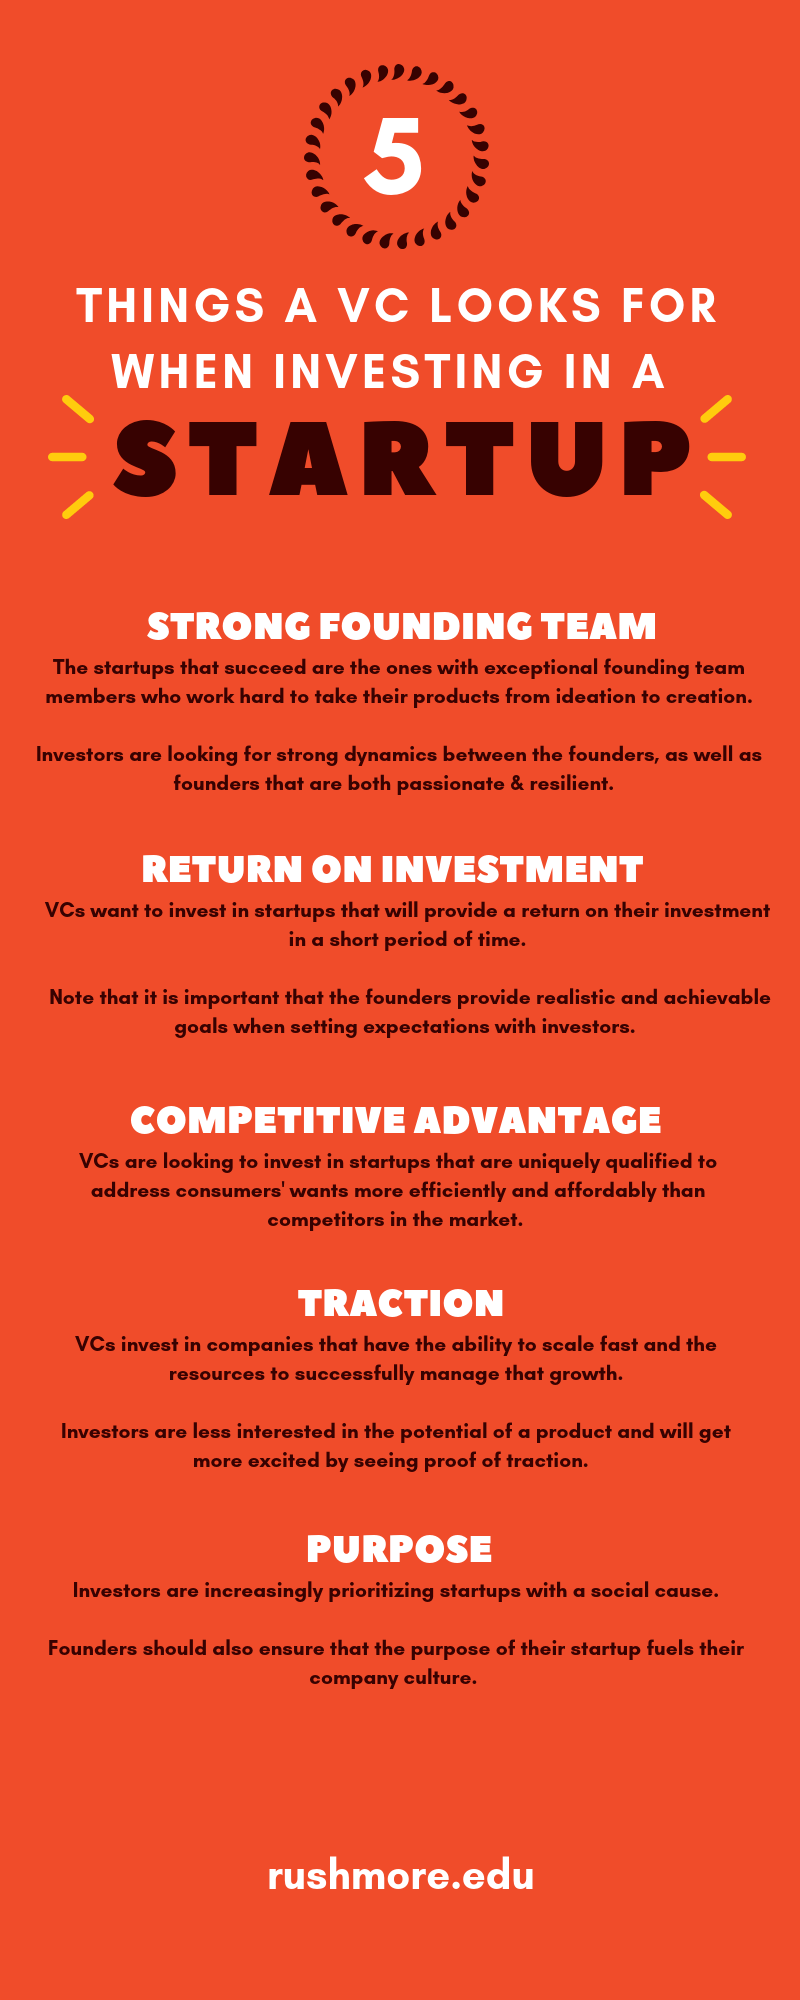 Things a VC looks for in a startup